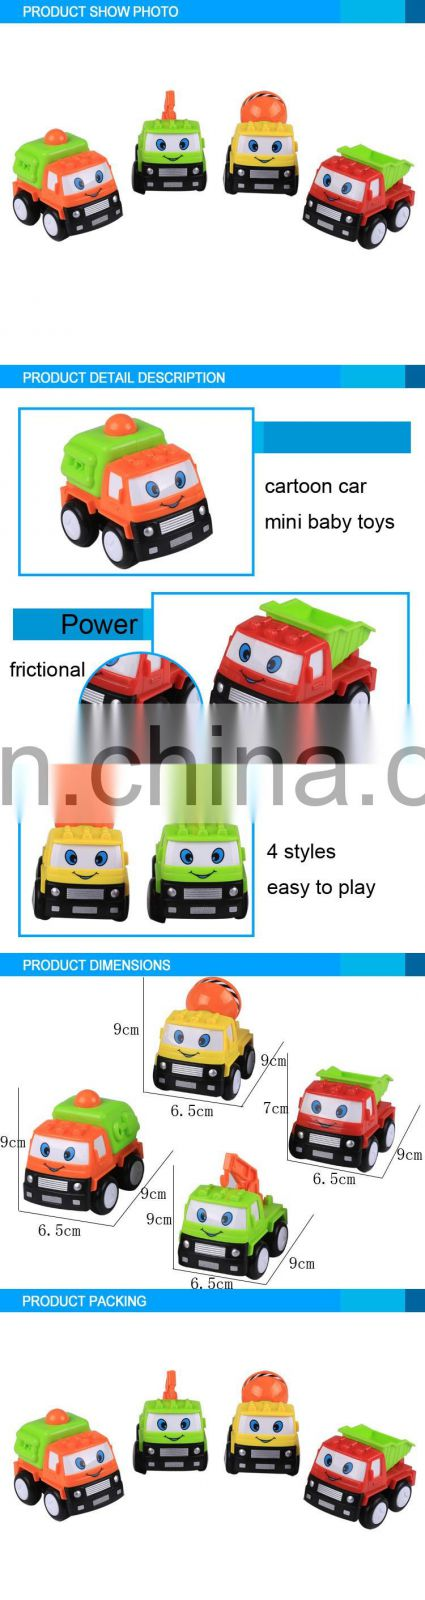 Meijin Christmas series Frictional car cartoon toys for kids